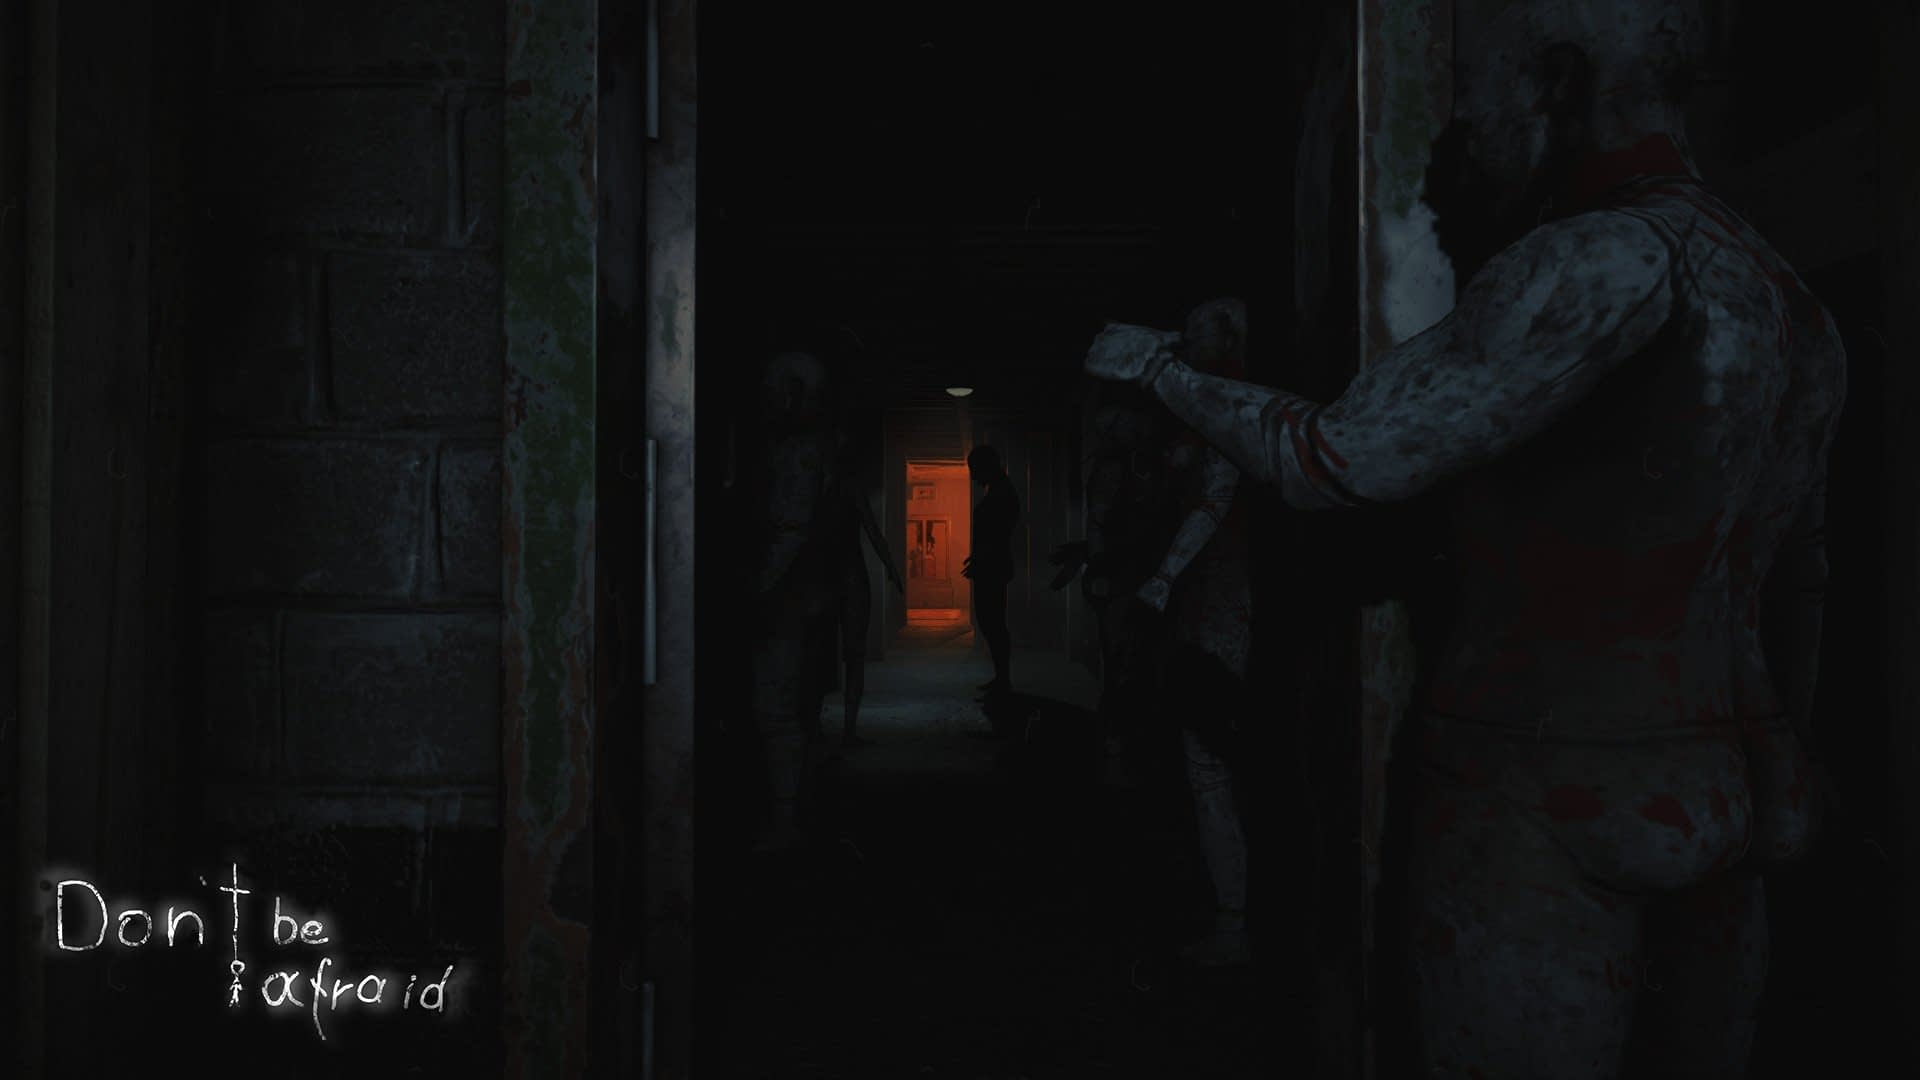 Don't be afraid gameplay